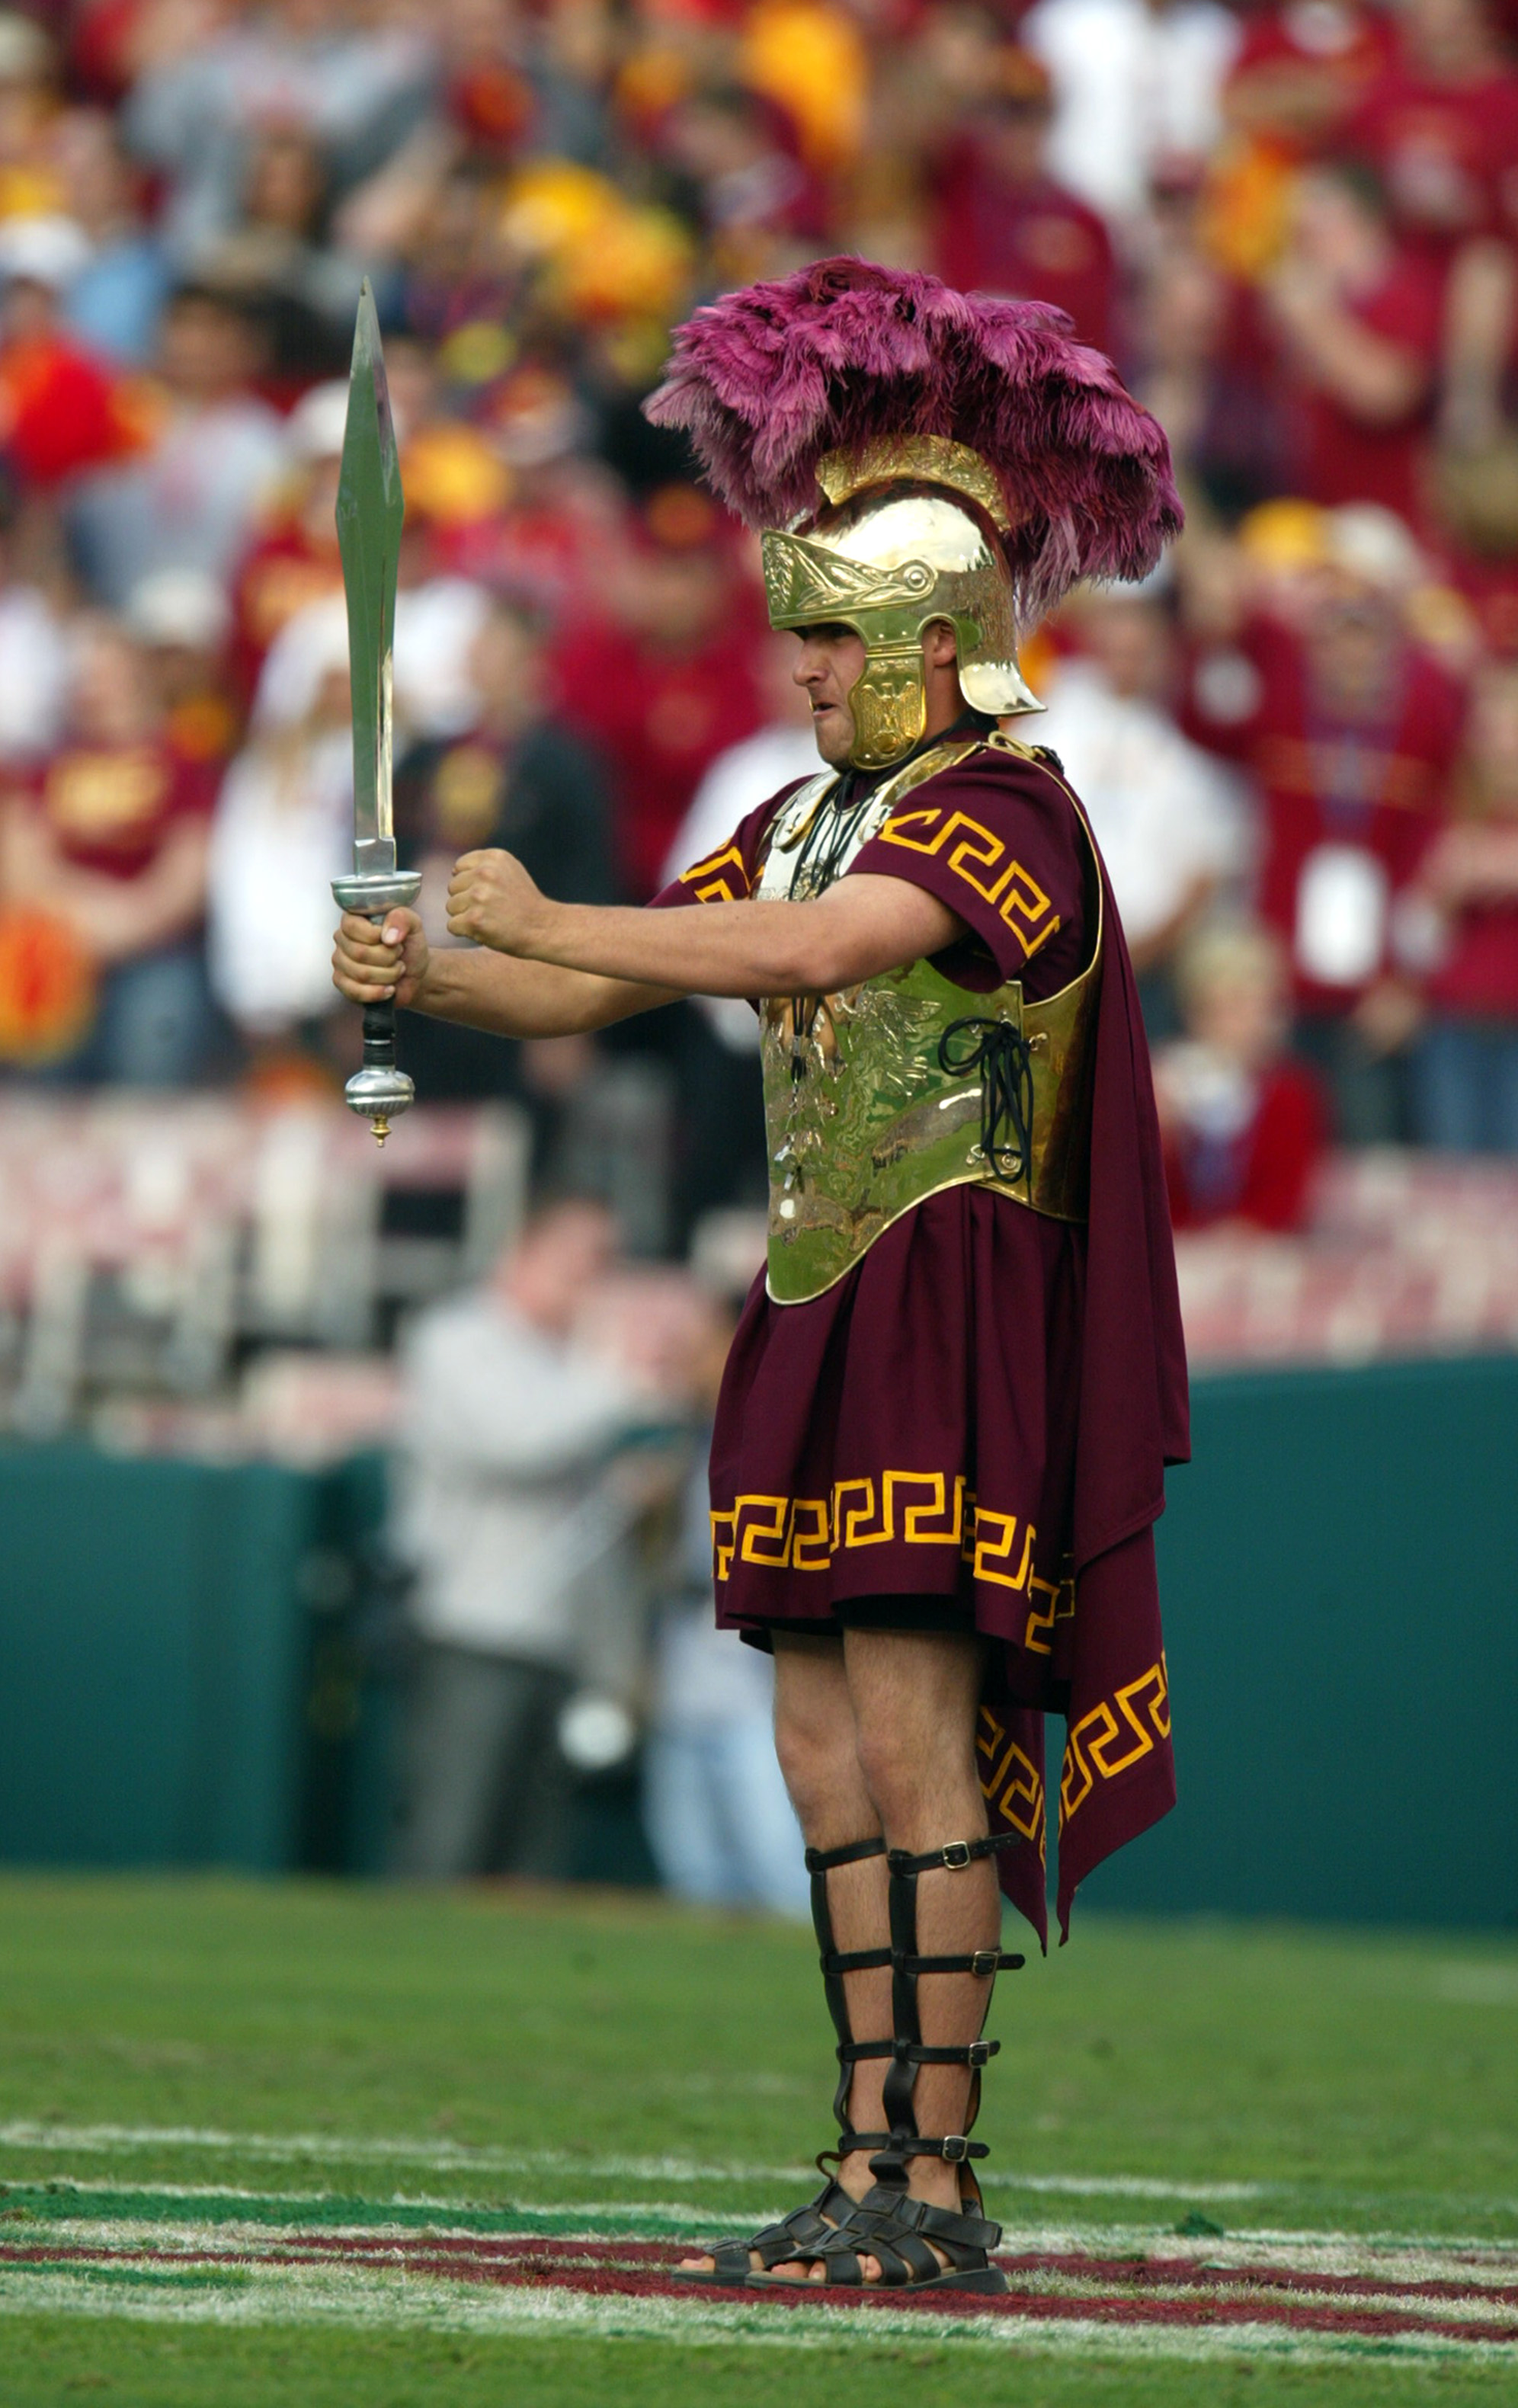 PASADENA, CA - JANUARY 1:  Tommy Trojan, mascot of the USC Trojans entertains the crowd during an intermission in the 2004 Rose Bowl game against the Michigan Wolverines on January 1, 2004 at the Rose Bowl in Pasadena, California.  USC defeated Michigan 2